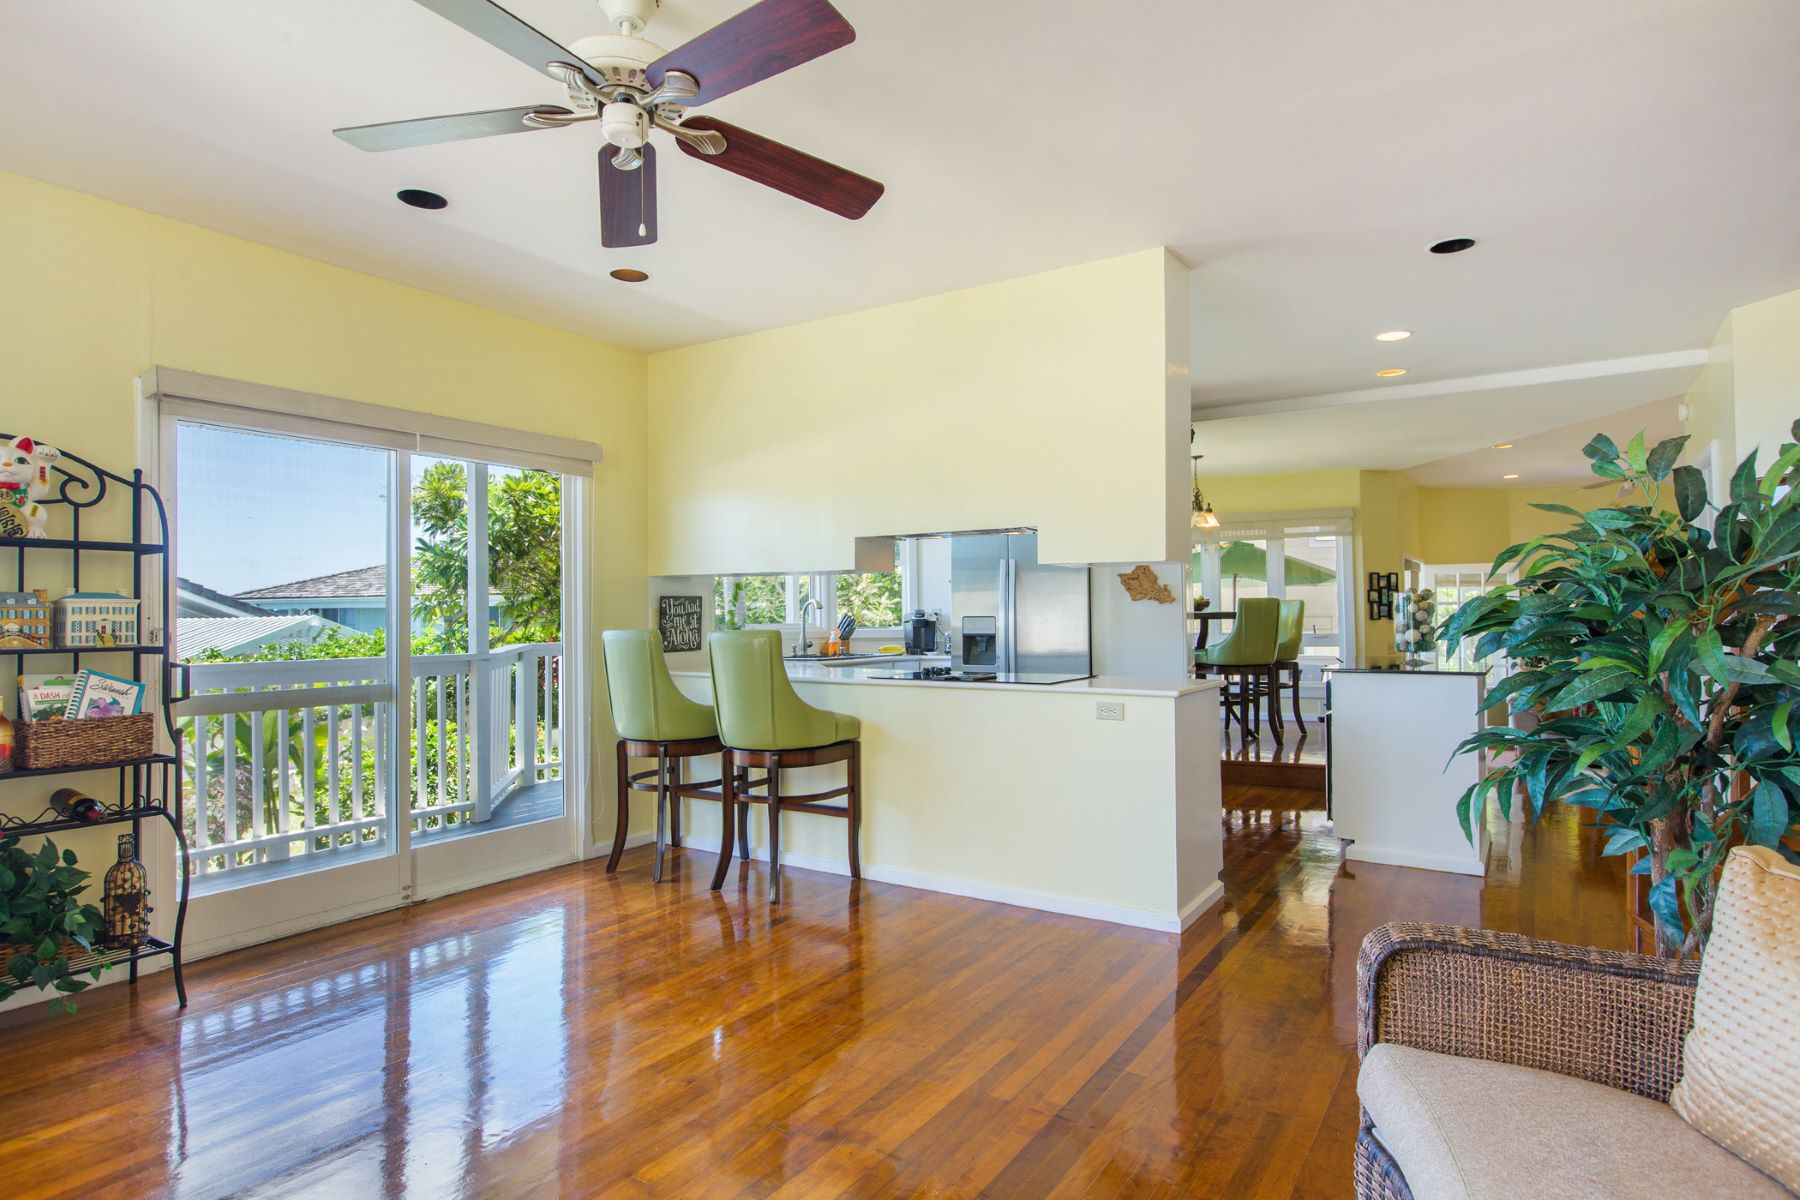 Additional photo for property listing at Charm and Elegance with Ocean Views 46-058 Ipuka Street Kaneohe, Hawaii 96744 United States